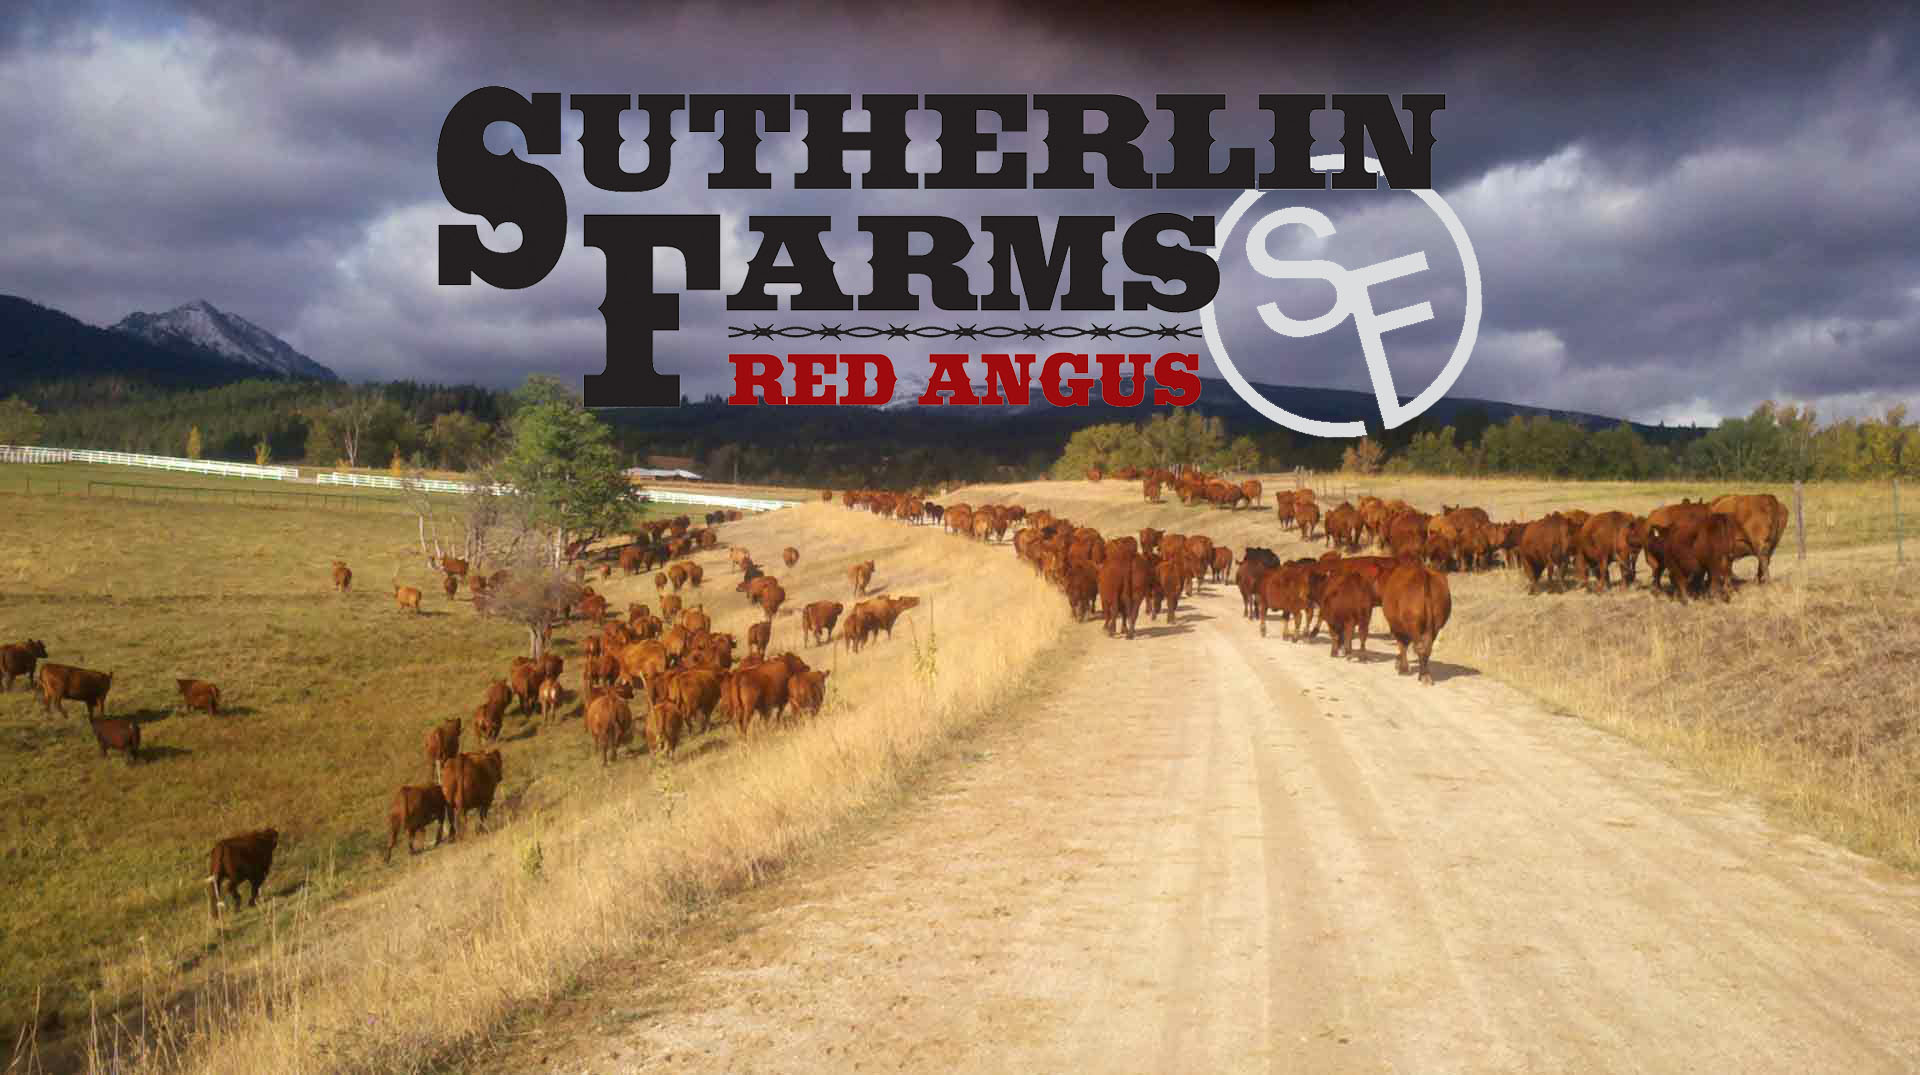 Sutherlin Red Angus Cattle Montana